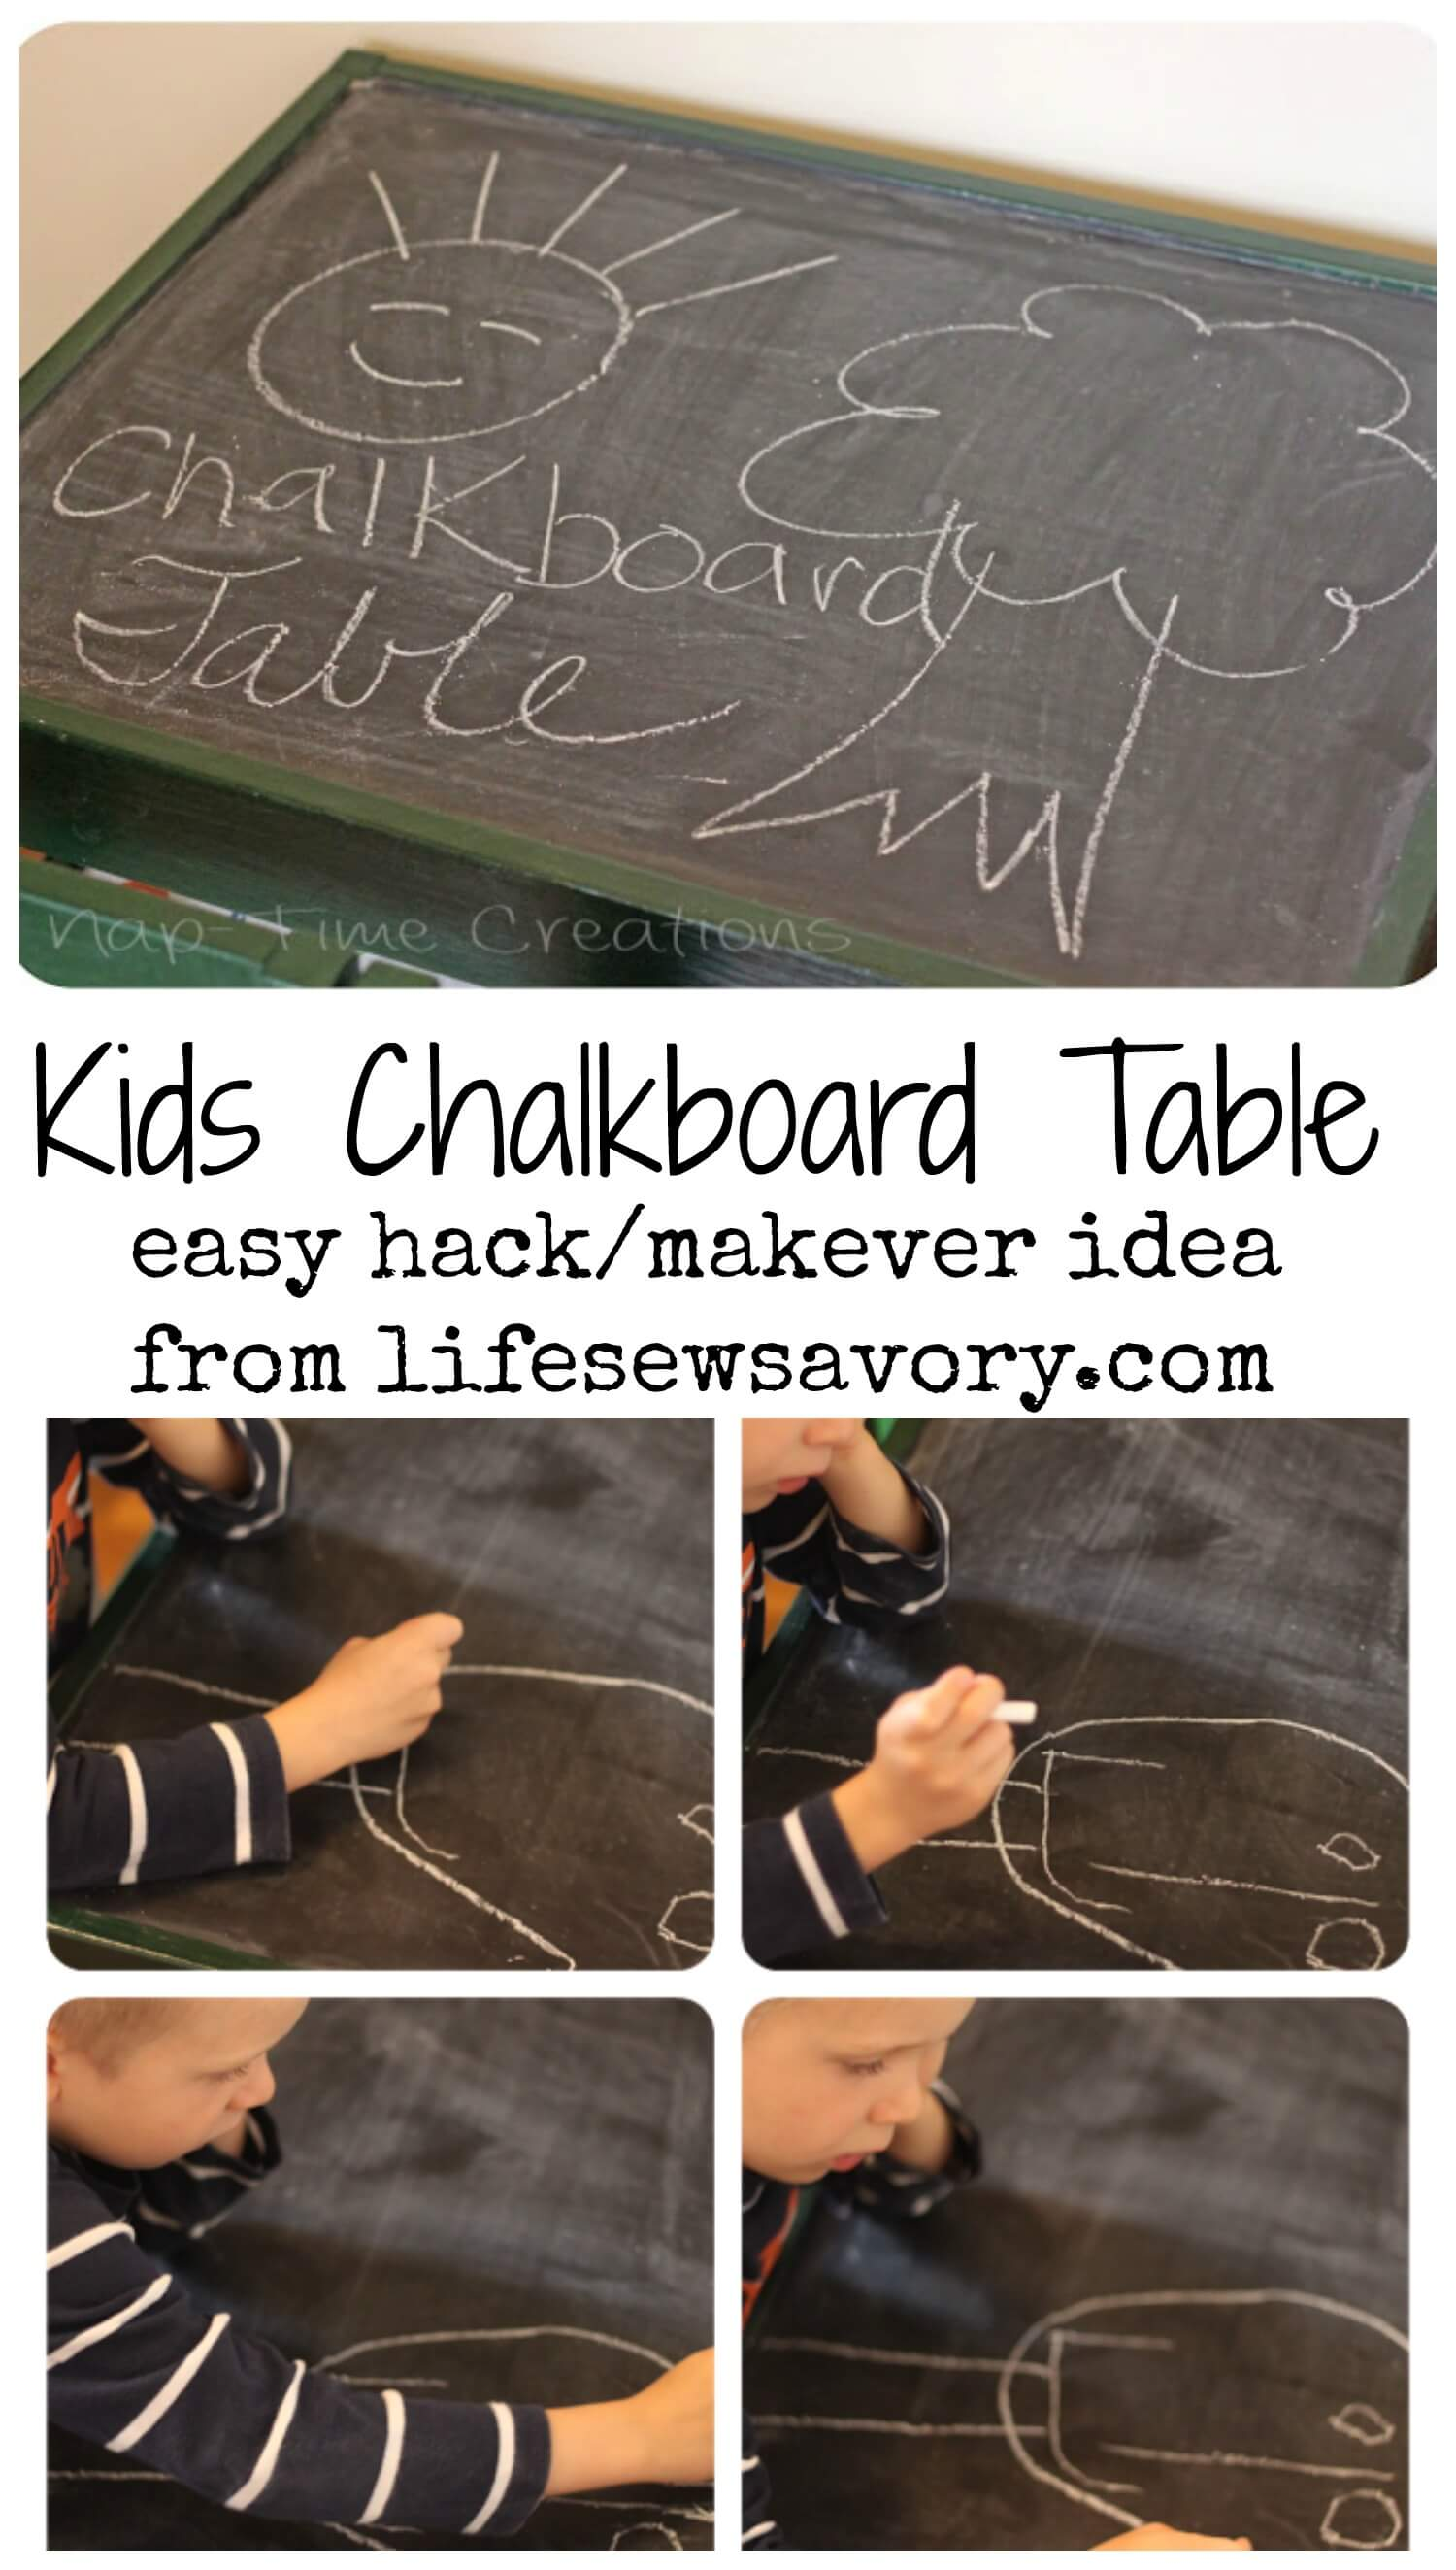 kids chalkboard table - easy DIY IKEA hack from Life Sew Savory